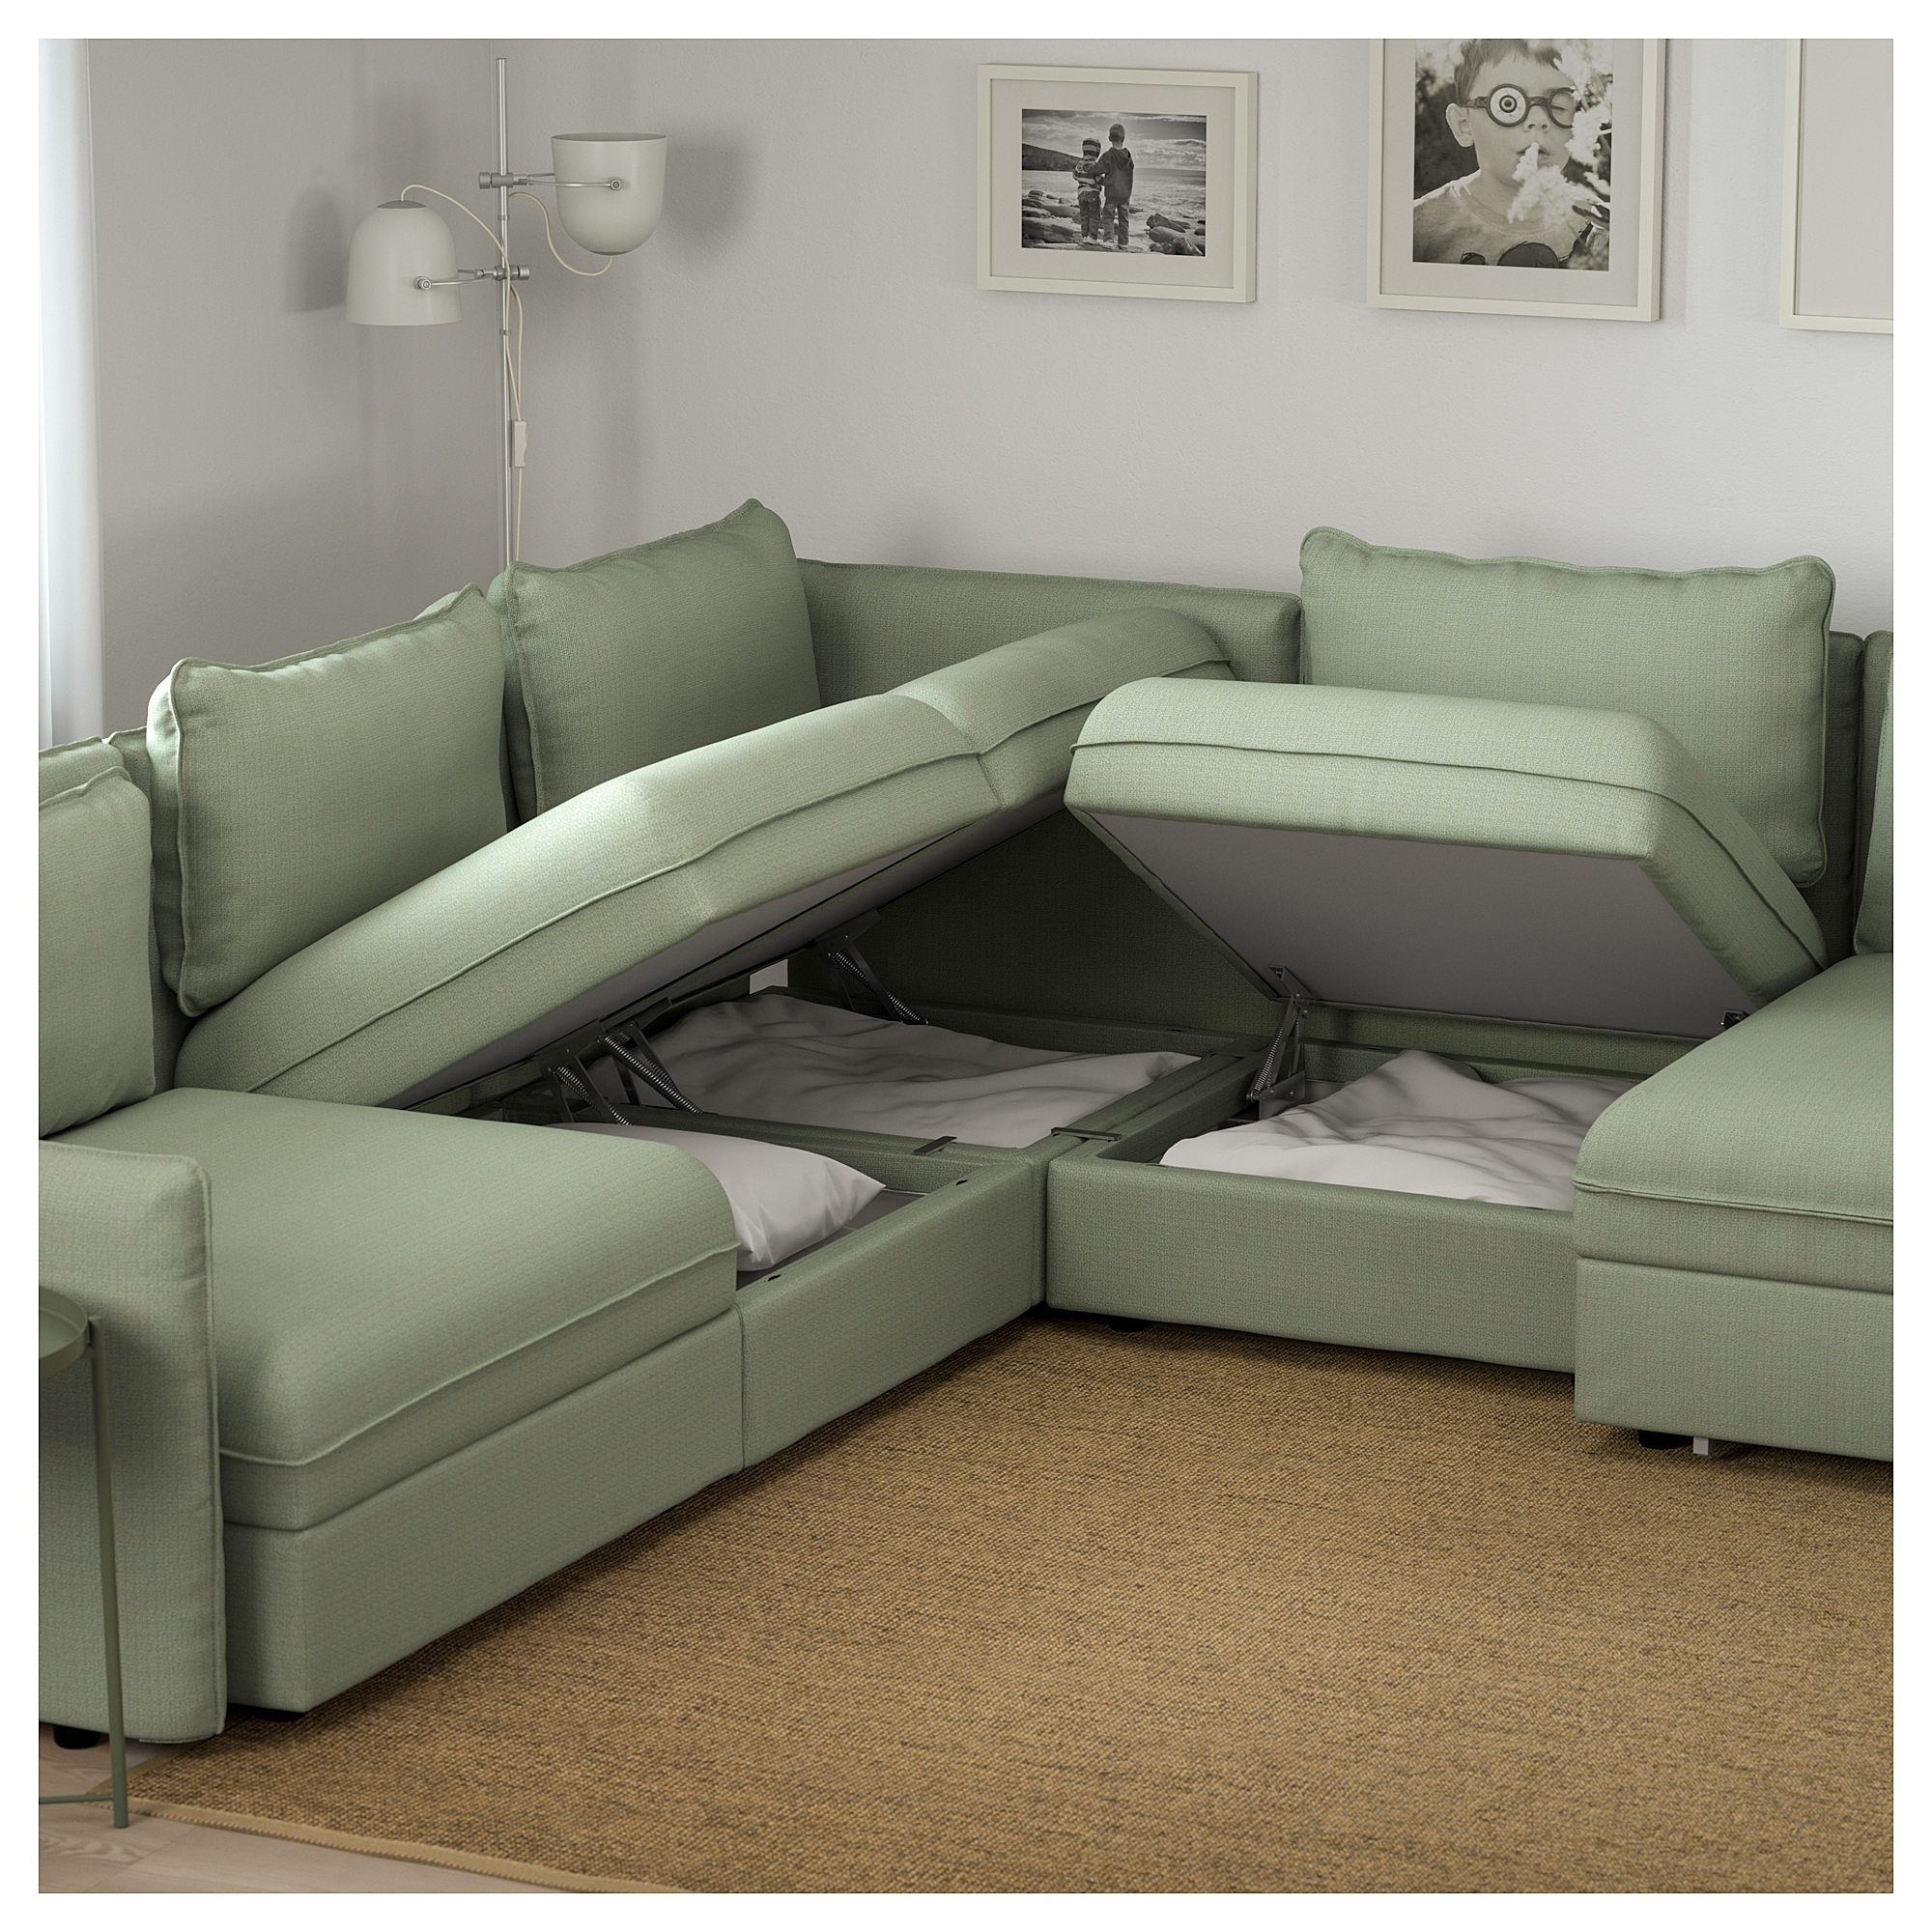 Vallentuna 6 Seat Corner Sofa With Bed Hillared Green – Ikea Within Ikea Corner Sofas With Storage (View 10 of 10)